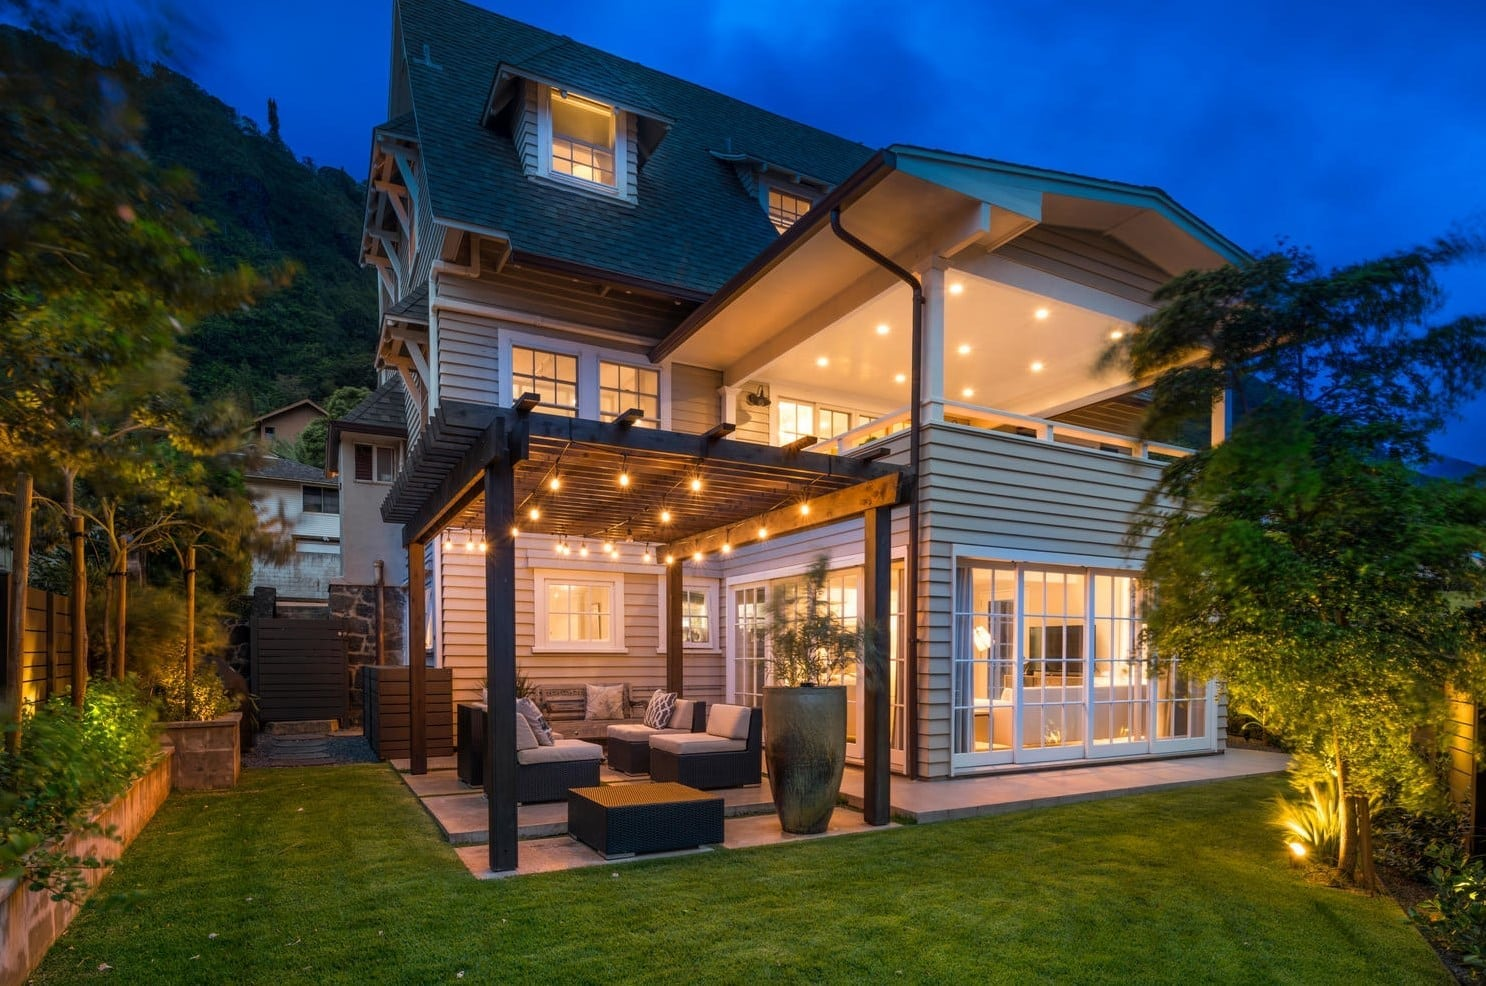 all large ve after see outdoor spaces lighting with the dark deck been outside patio fun residential perspectives and you missing living backyard